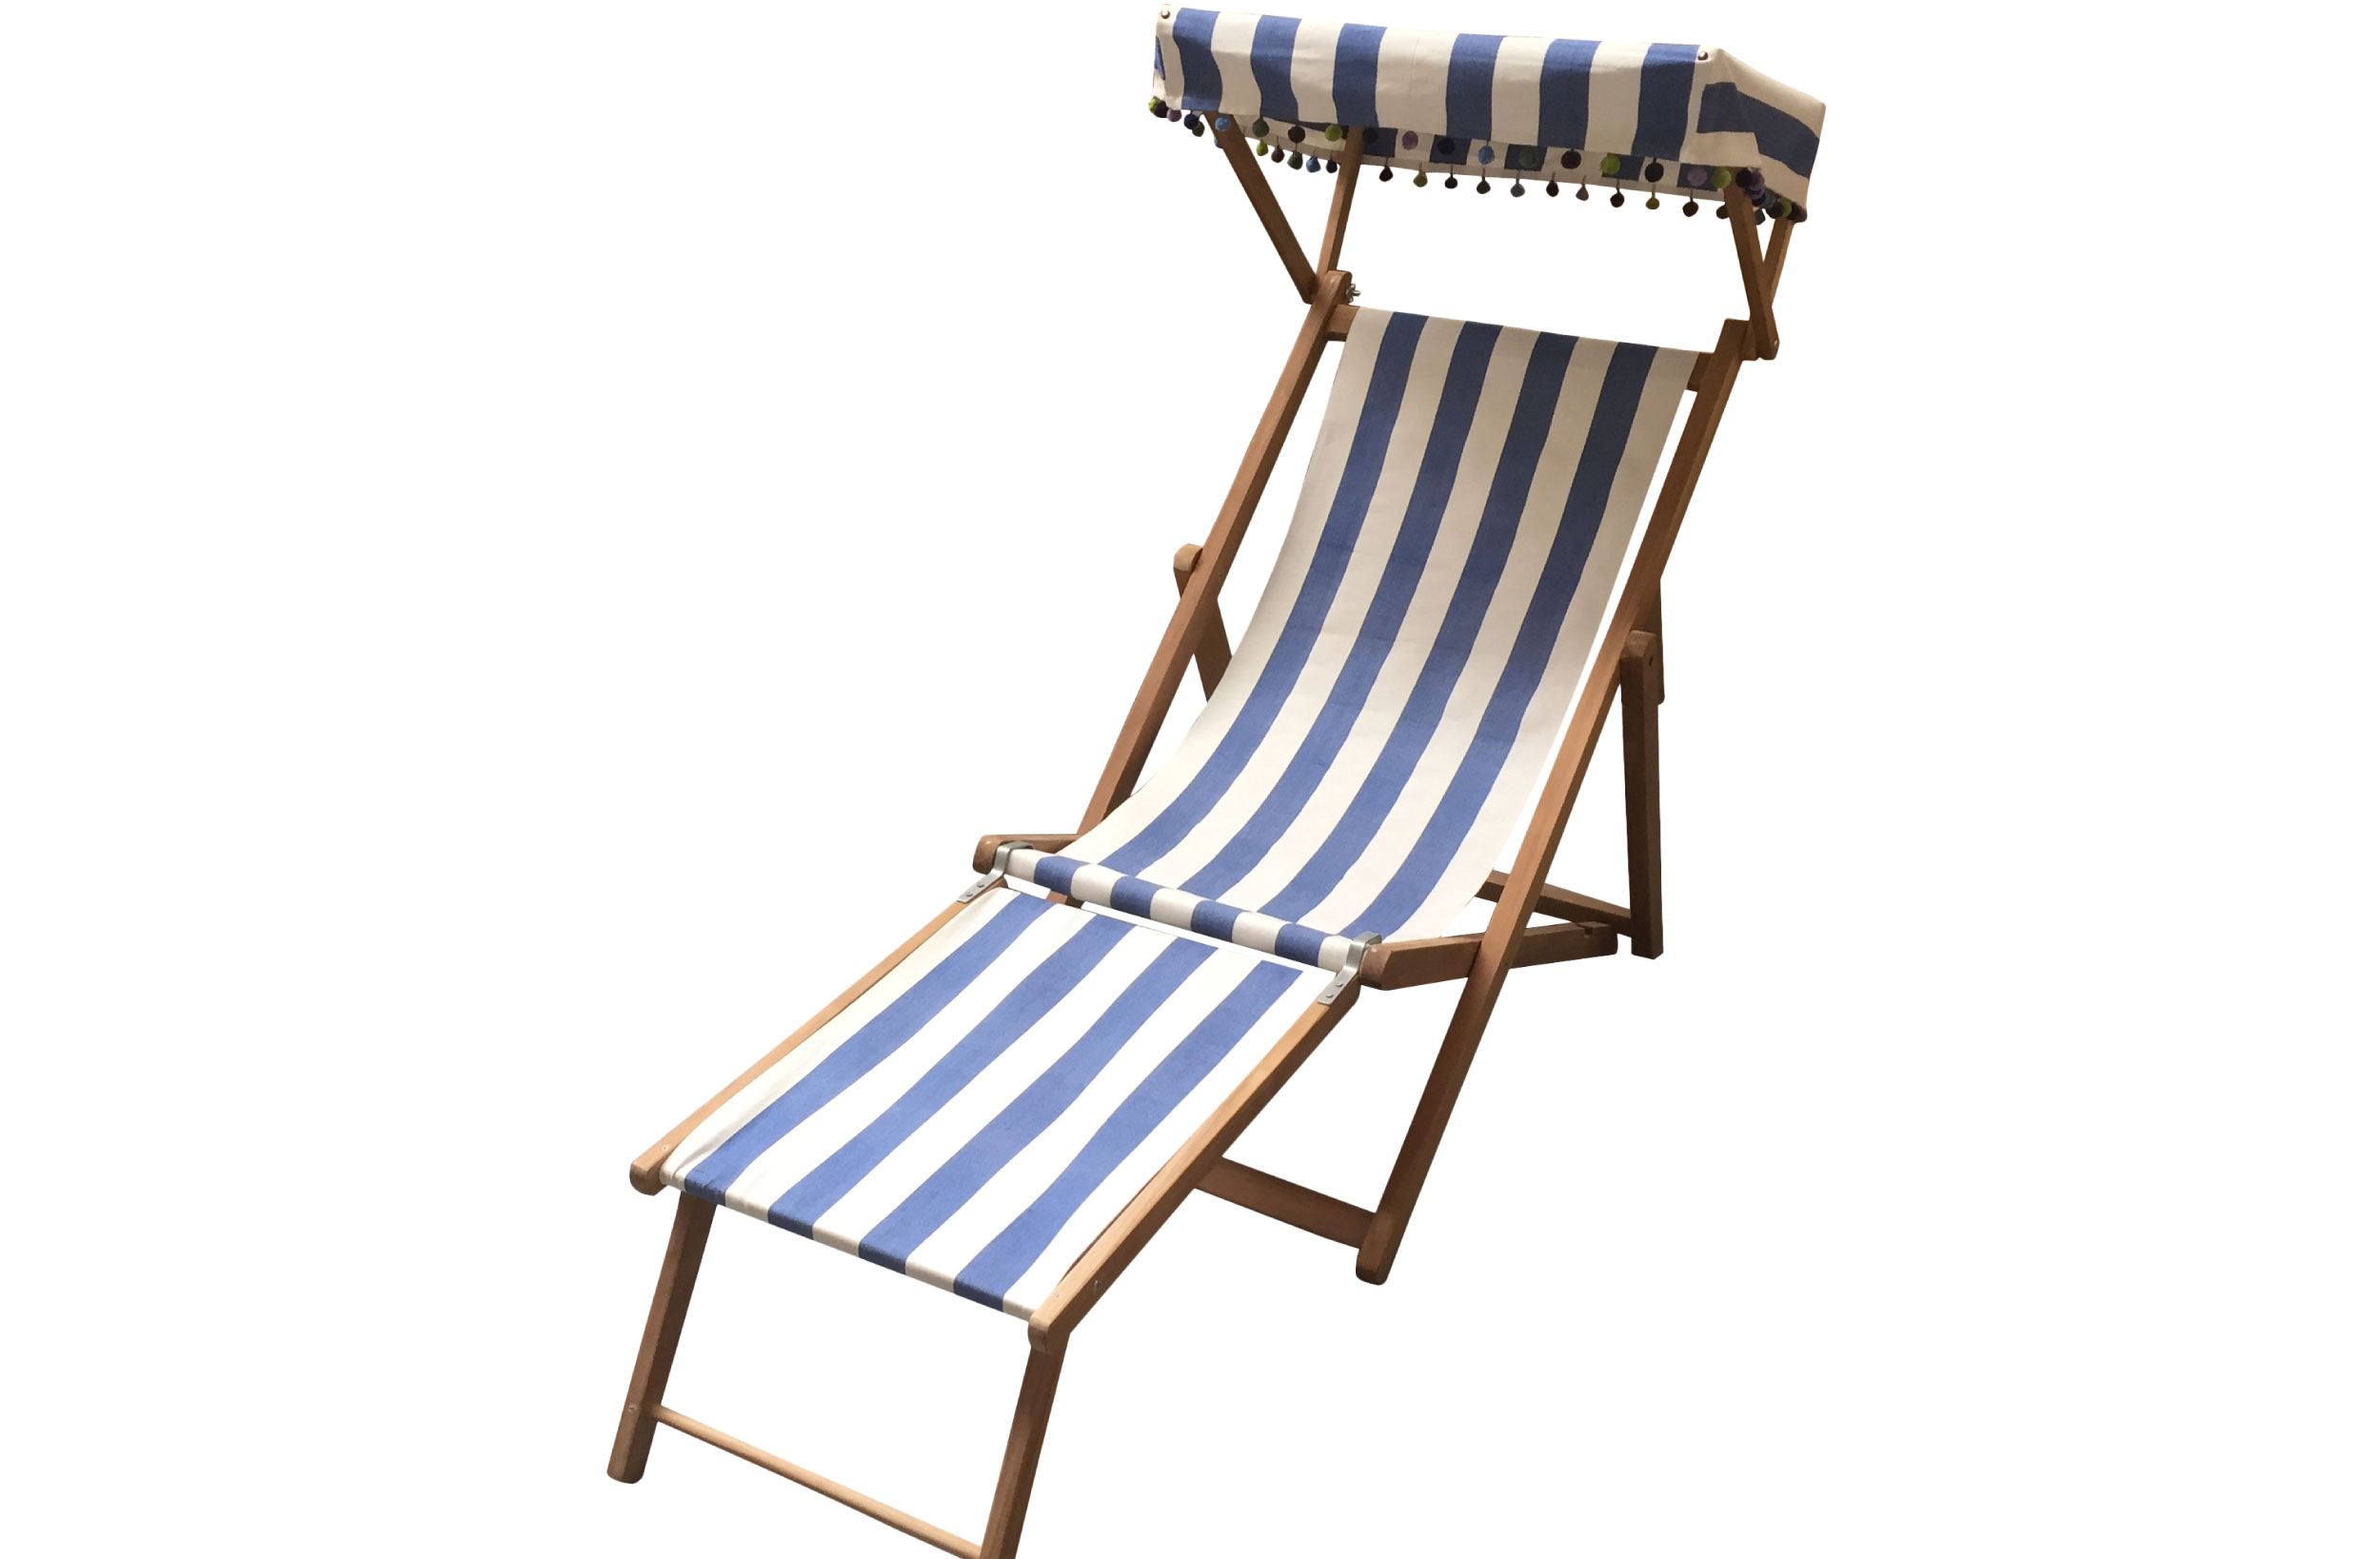 Blue & white striped Edwardian Deckchairs with Canopy and Footstool